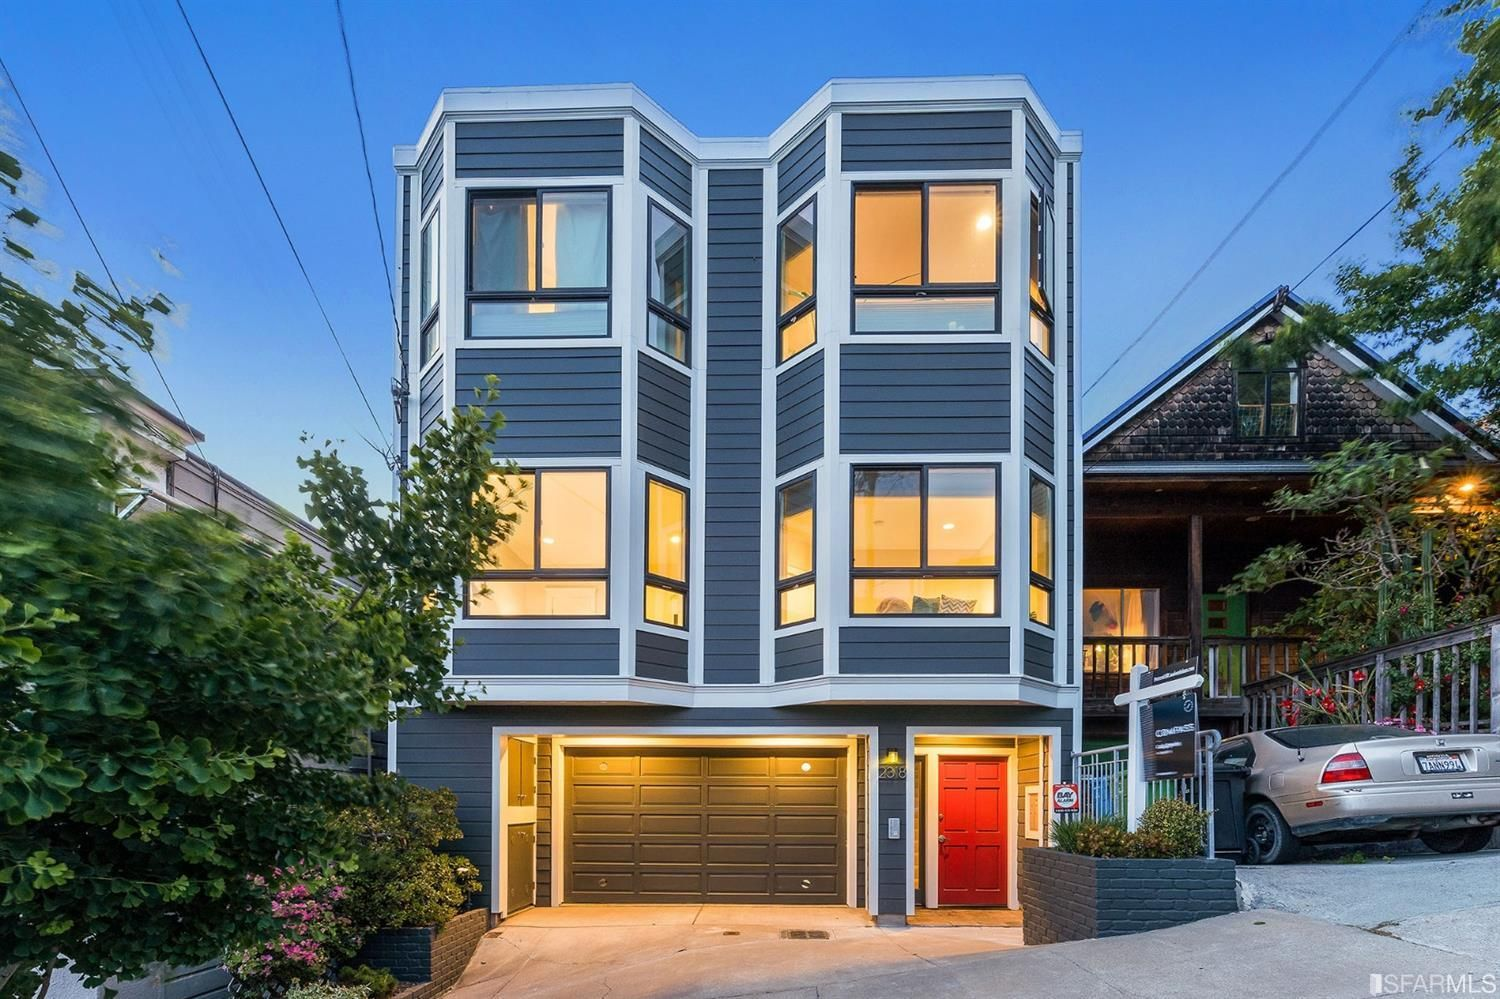 2318 25th St #A, San Francisco, CA 94107 - Recently Sold | Trulia